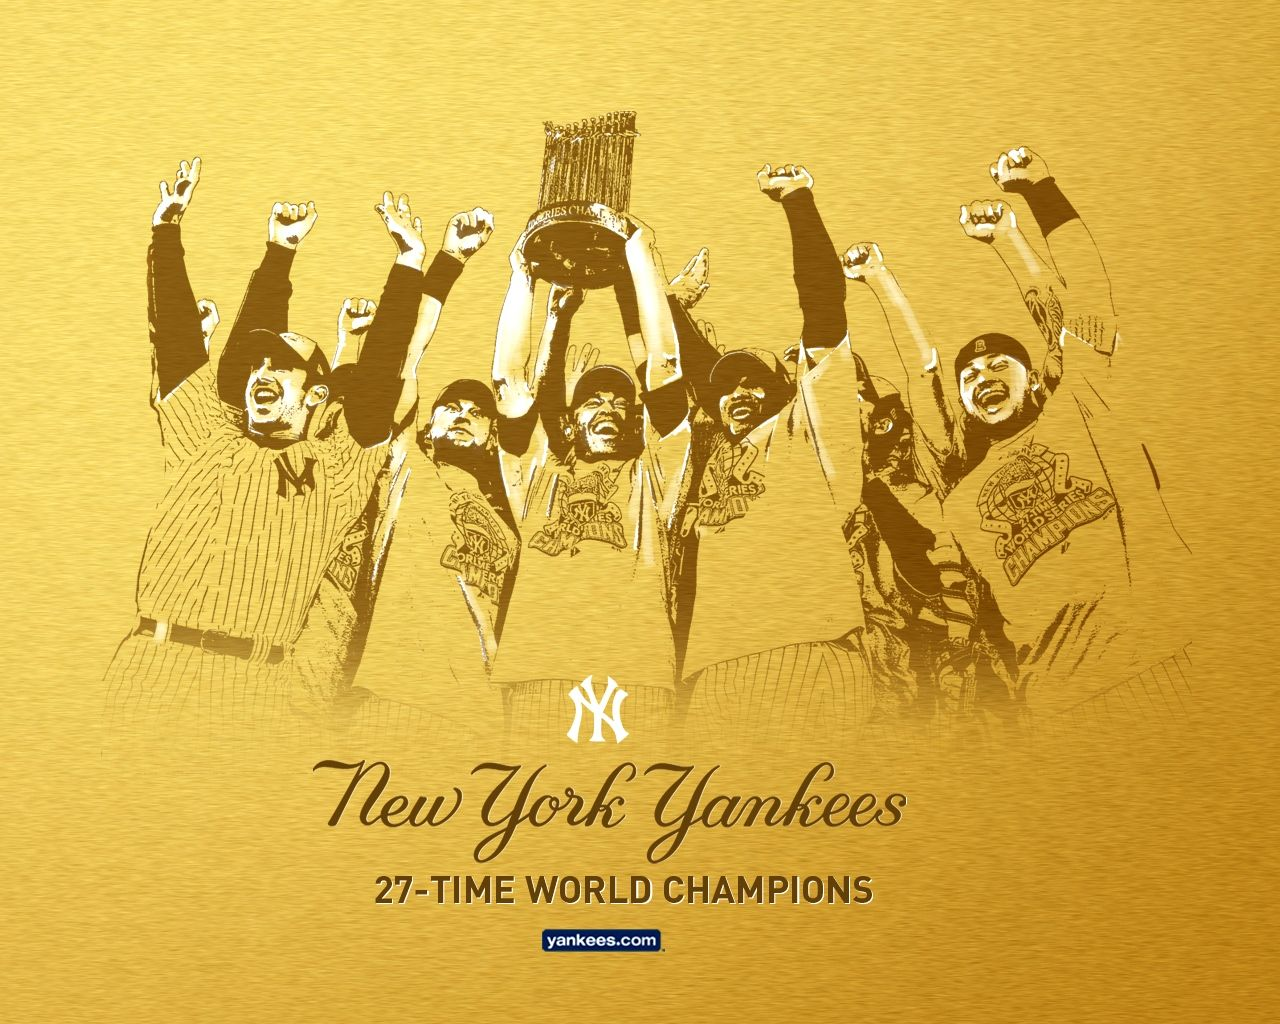 Pin By Anthony On New York Yankees New York Yankees Baseball New York Yankees Yankees Retired Numbers